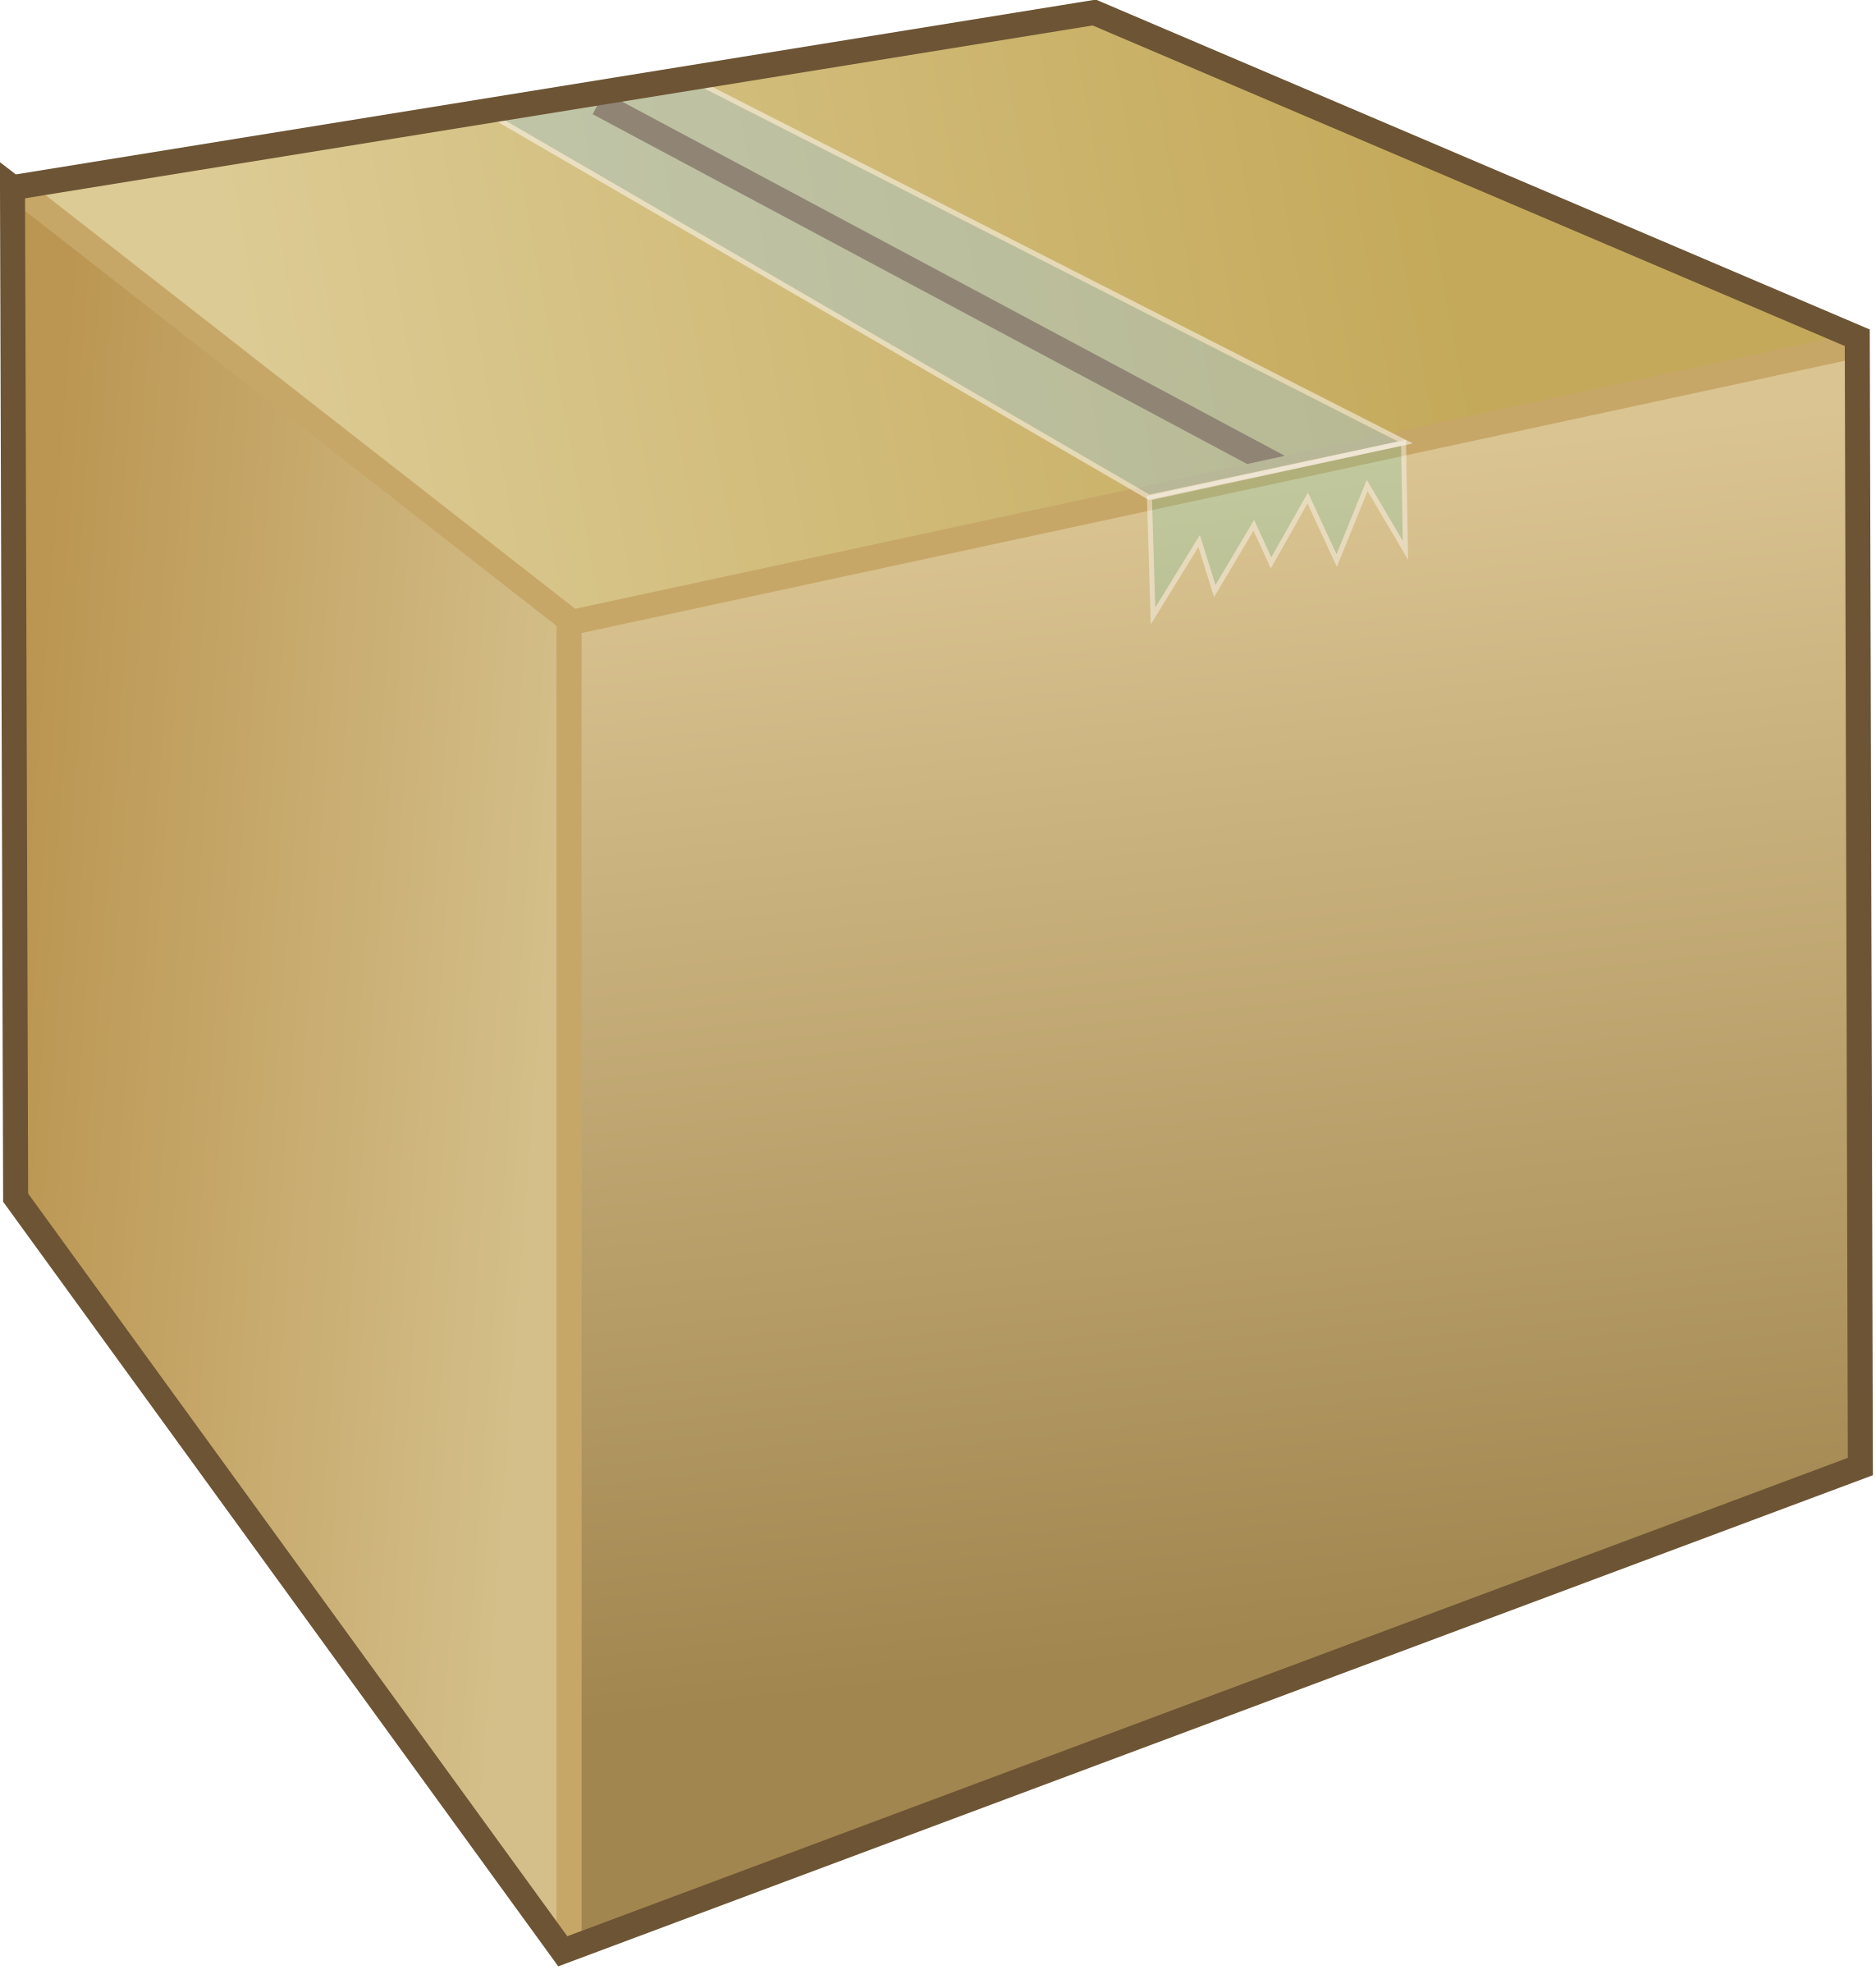 Crafty design cardboard boxes. Clipart box stacked box